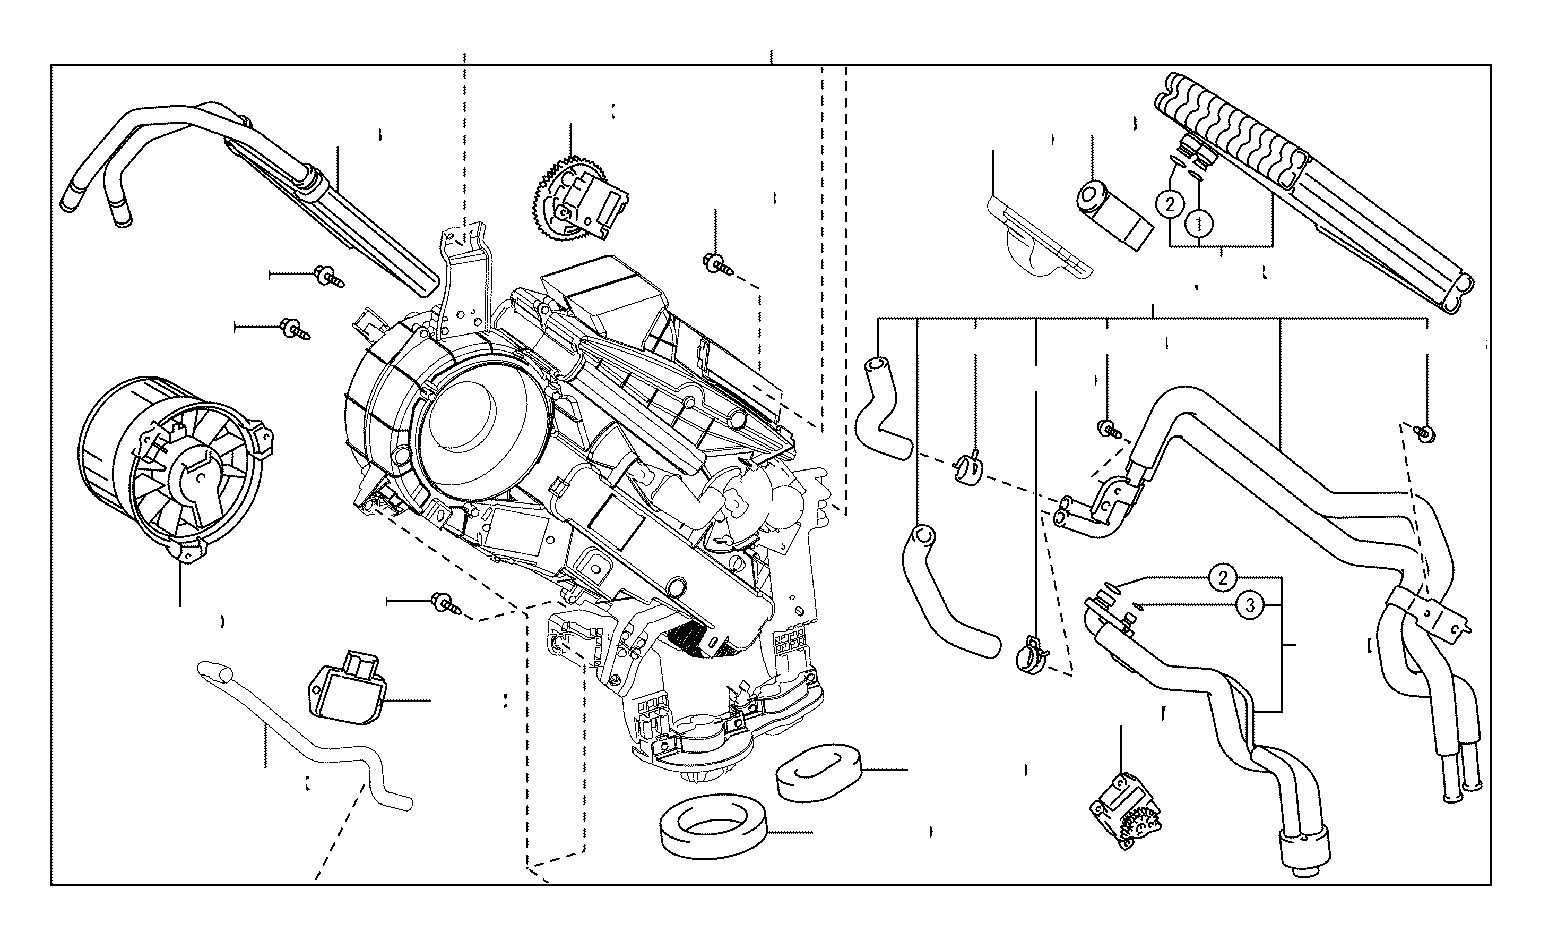 2013 Toyota Highlander A/c expansion valve (rear). Valve